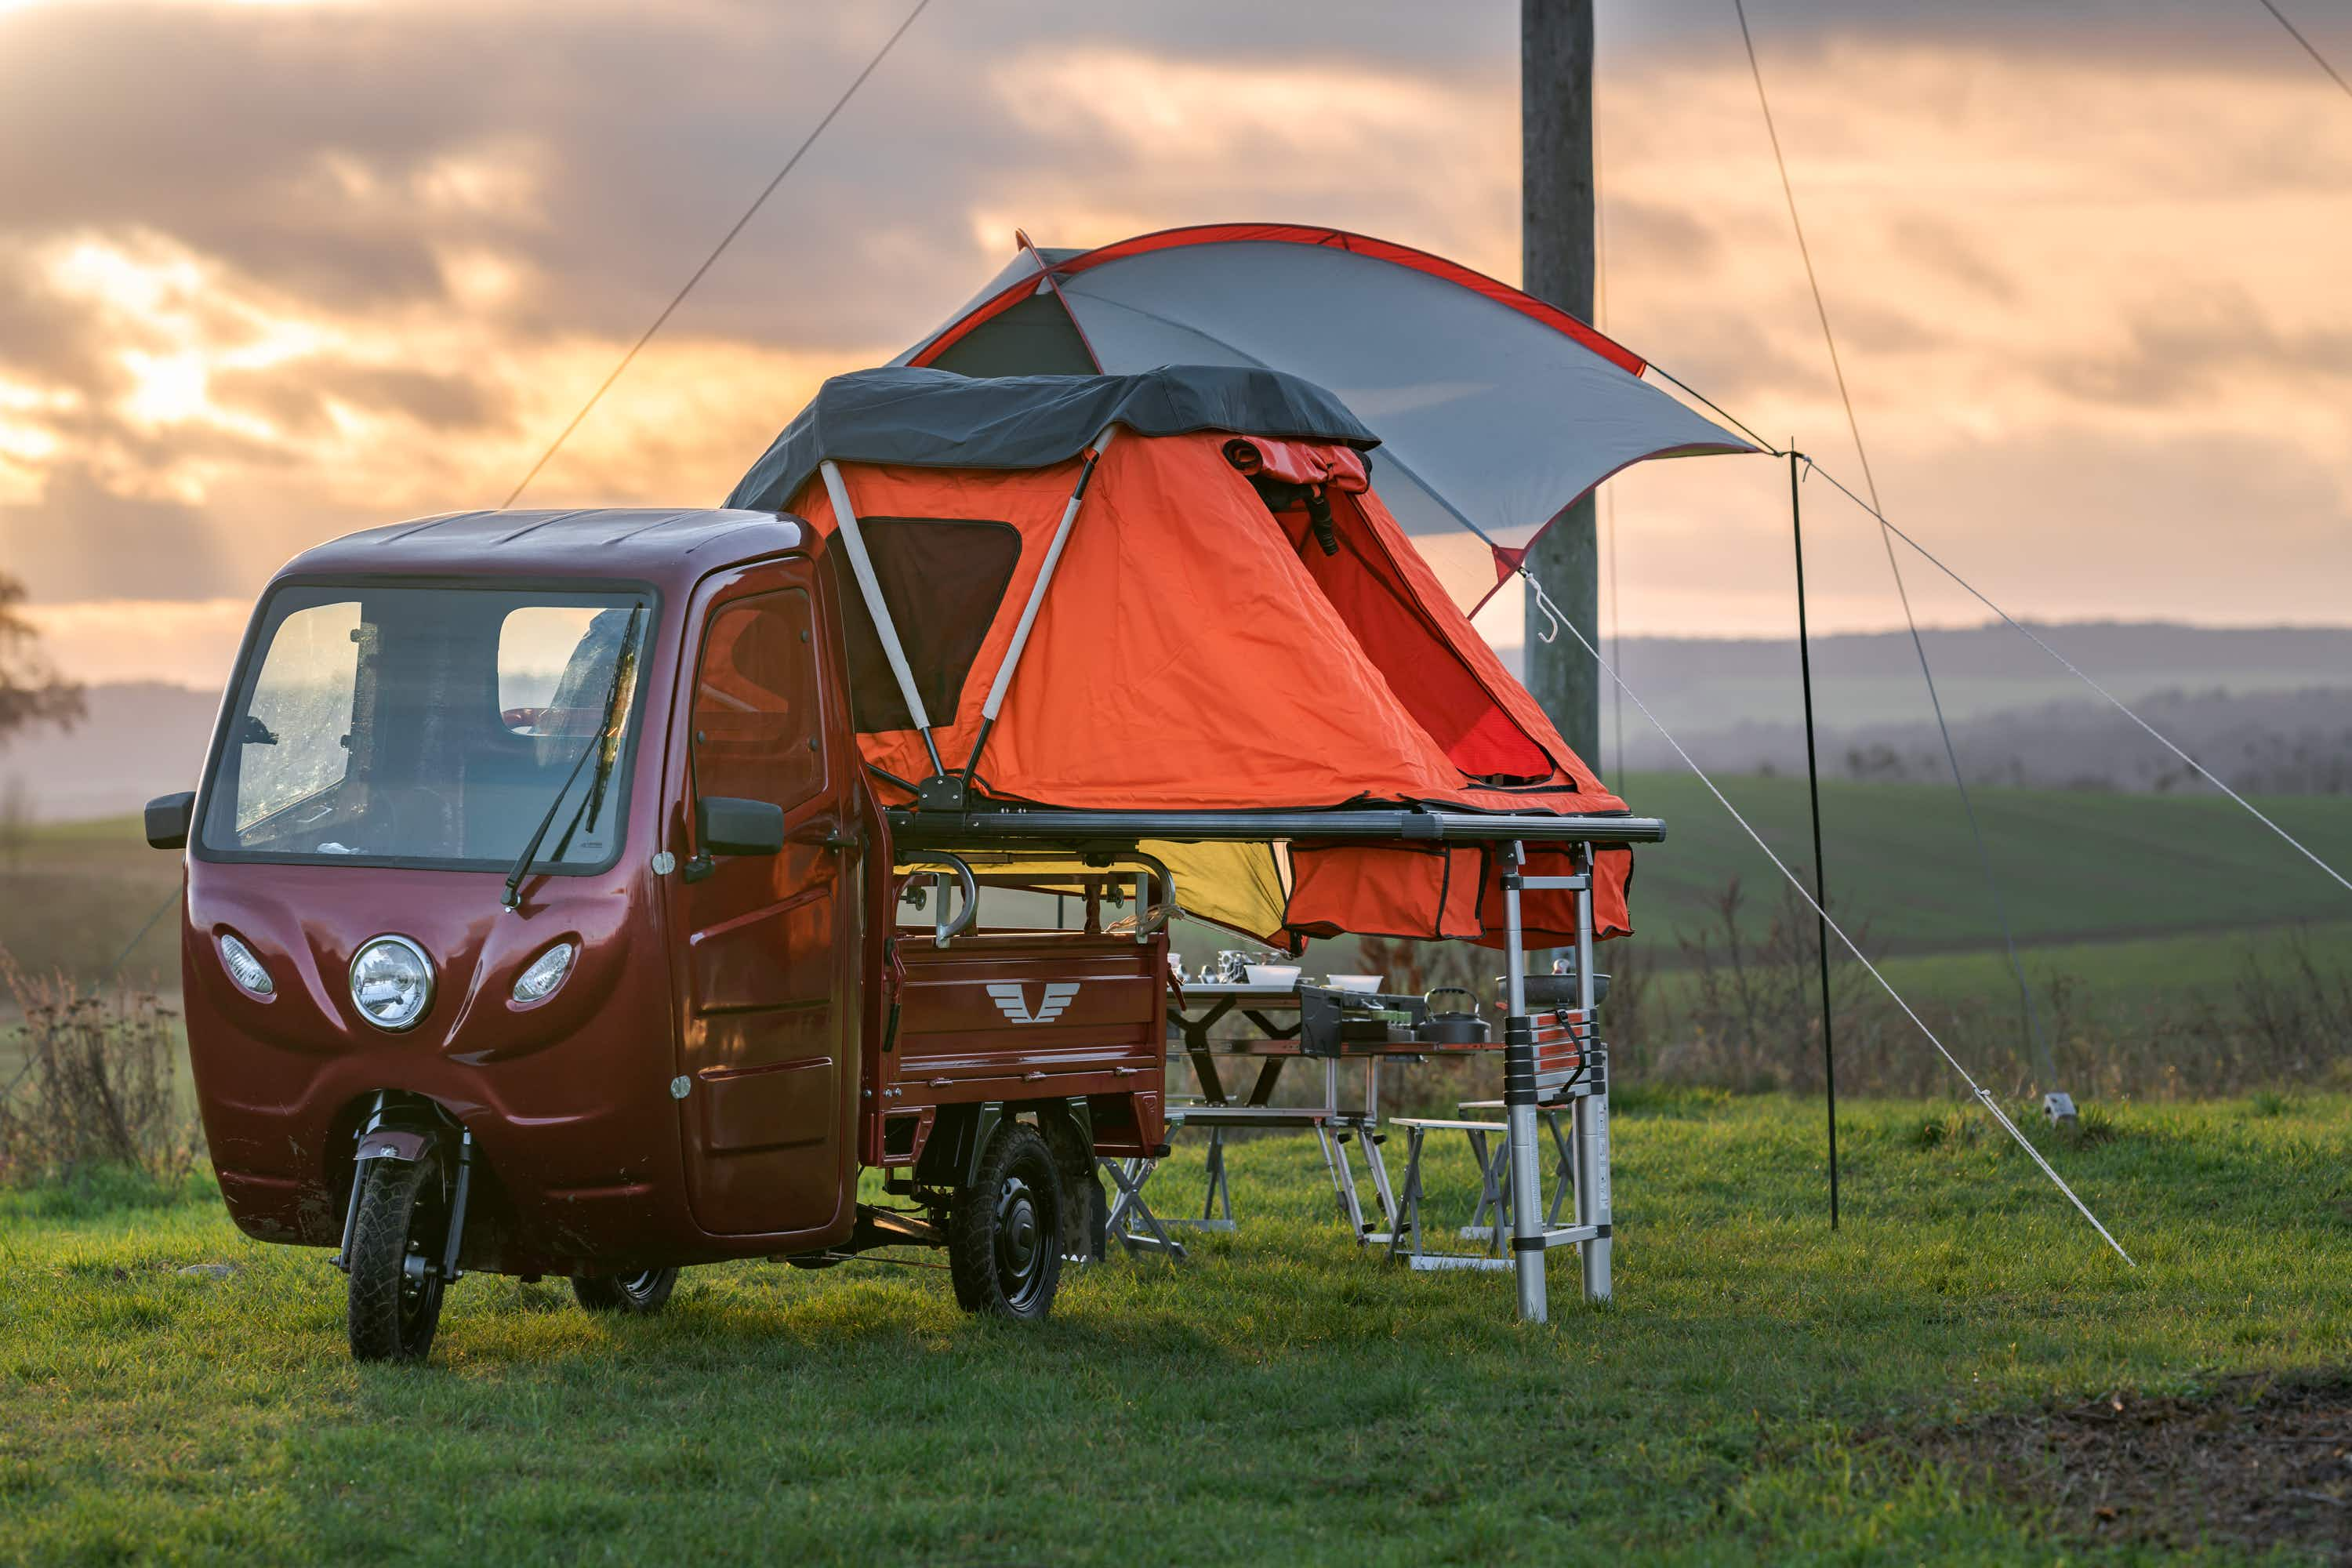 This eye-catching electric tricycle quickly transforms into a micro camper